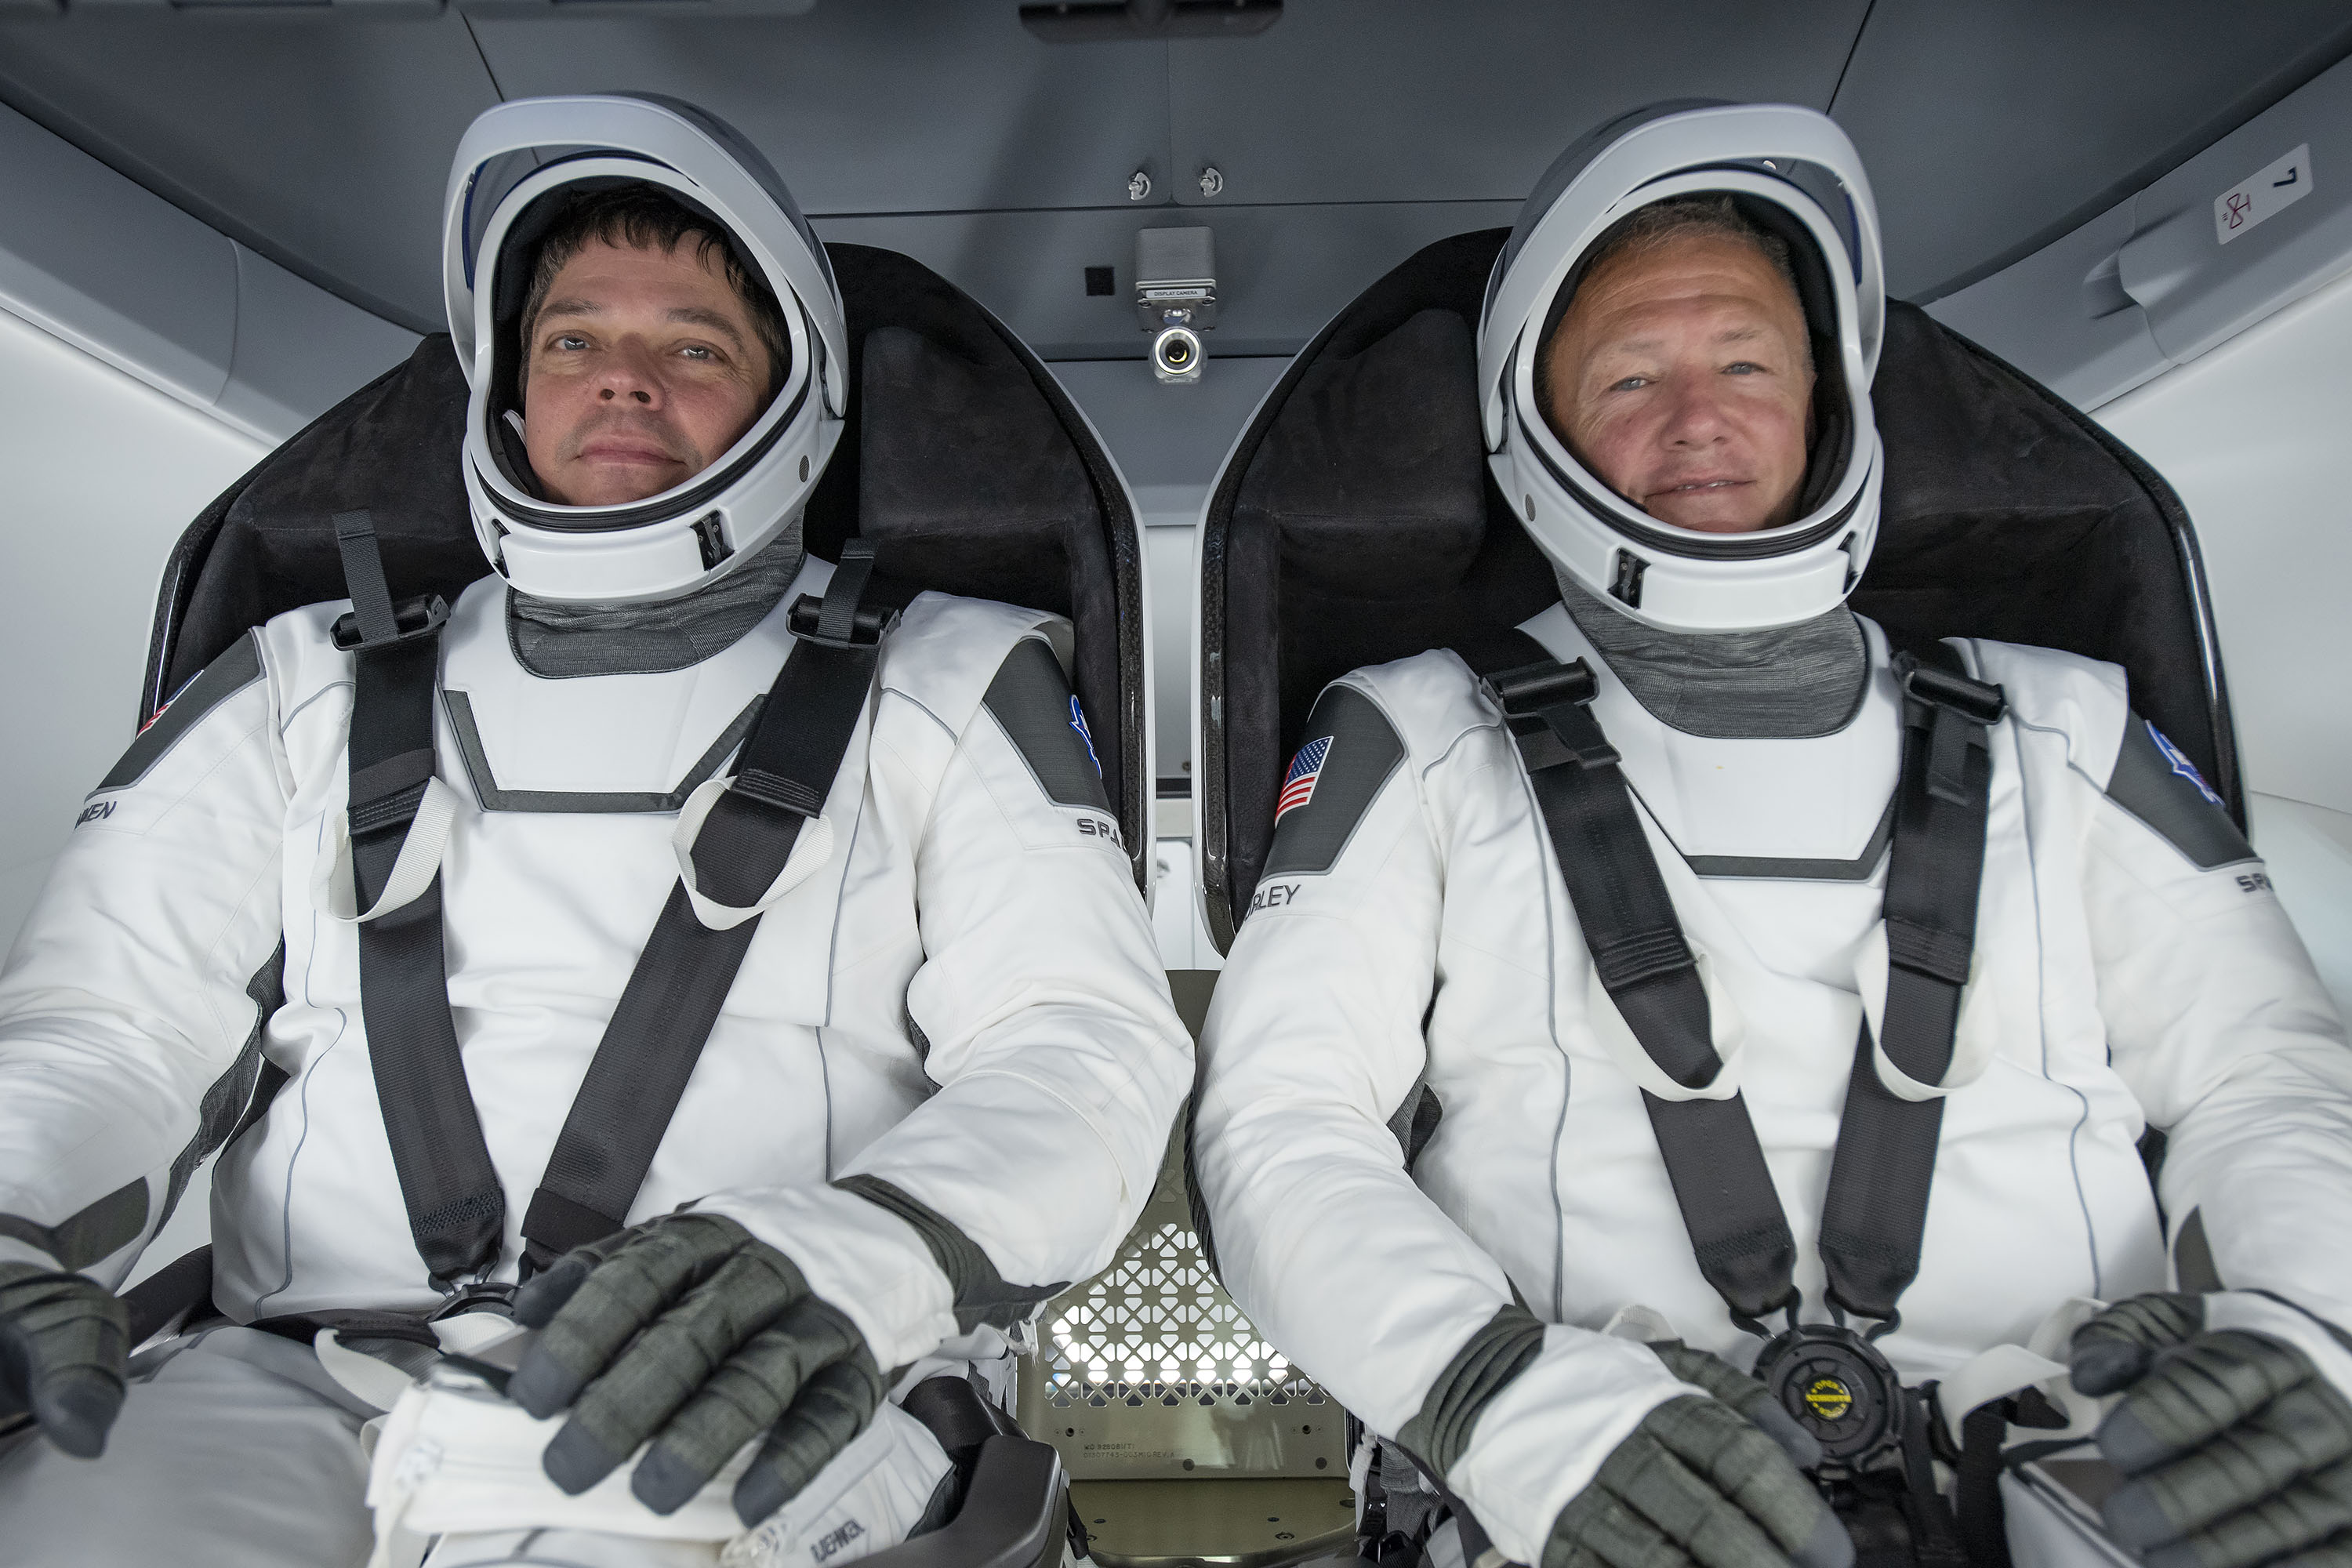 NASA to Provide Coverage of SpaceX Commercial Crew Test Flight